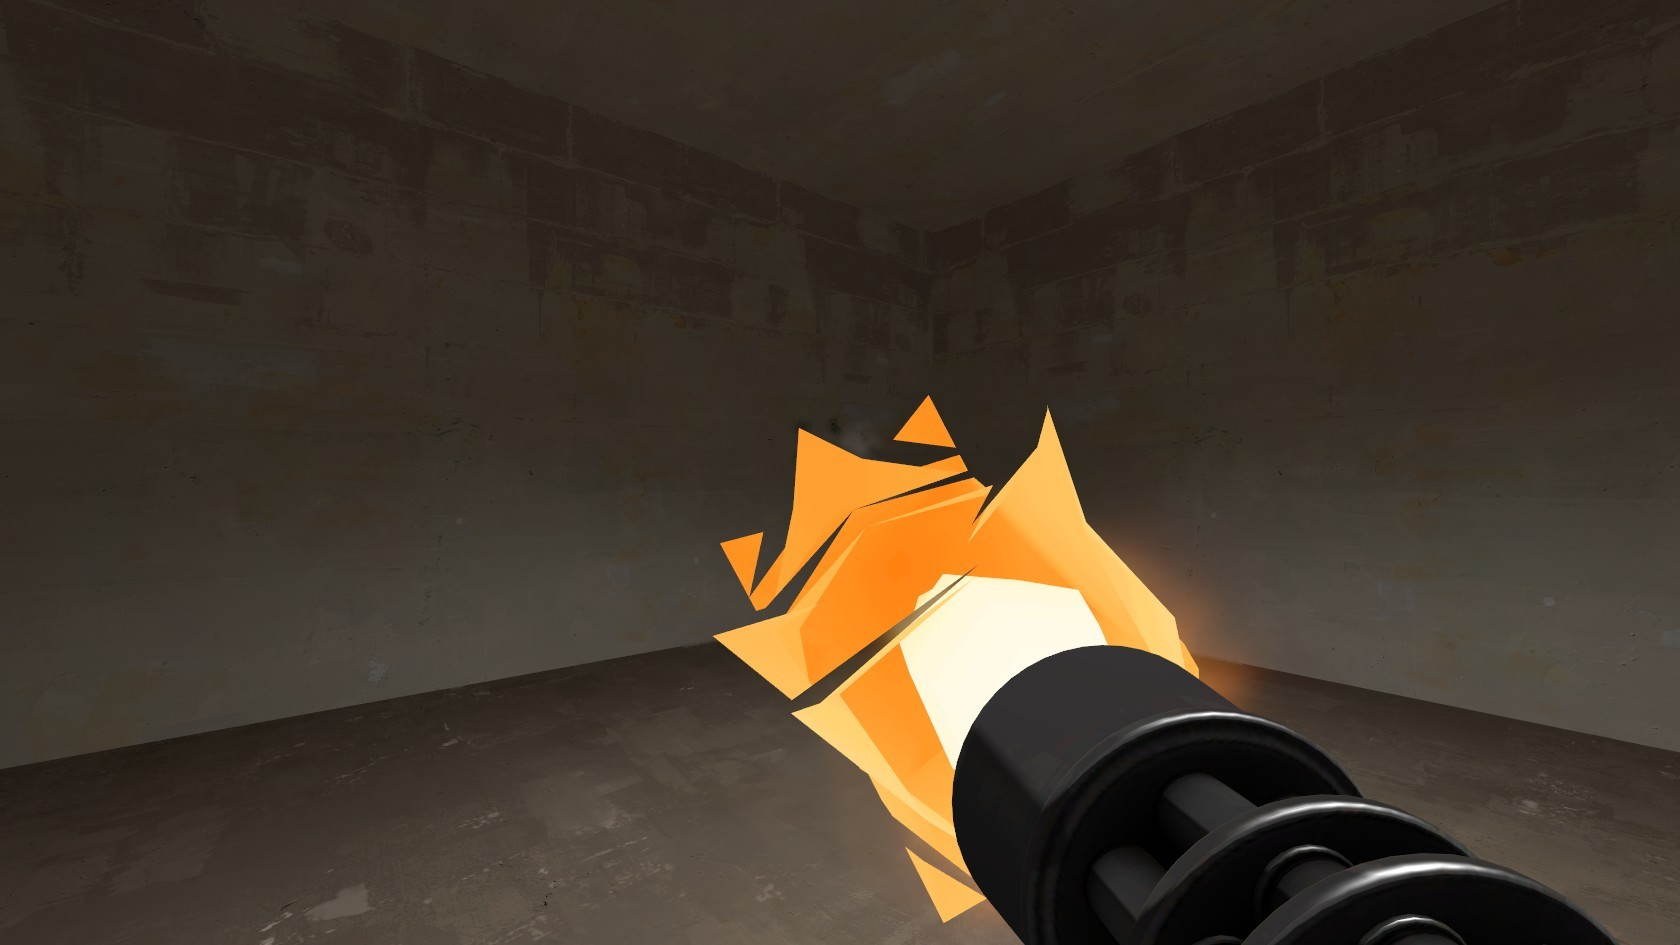 Tf2 Beta minigun muzzleflash restoration WiP screenshot #3